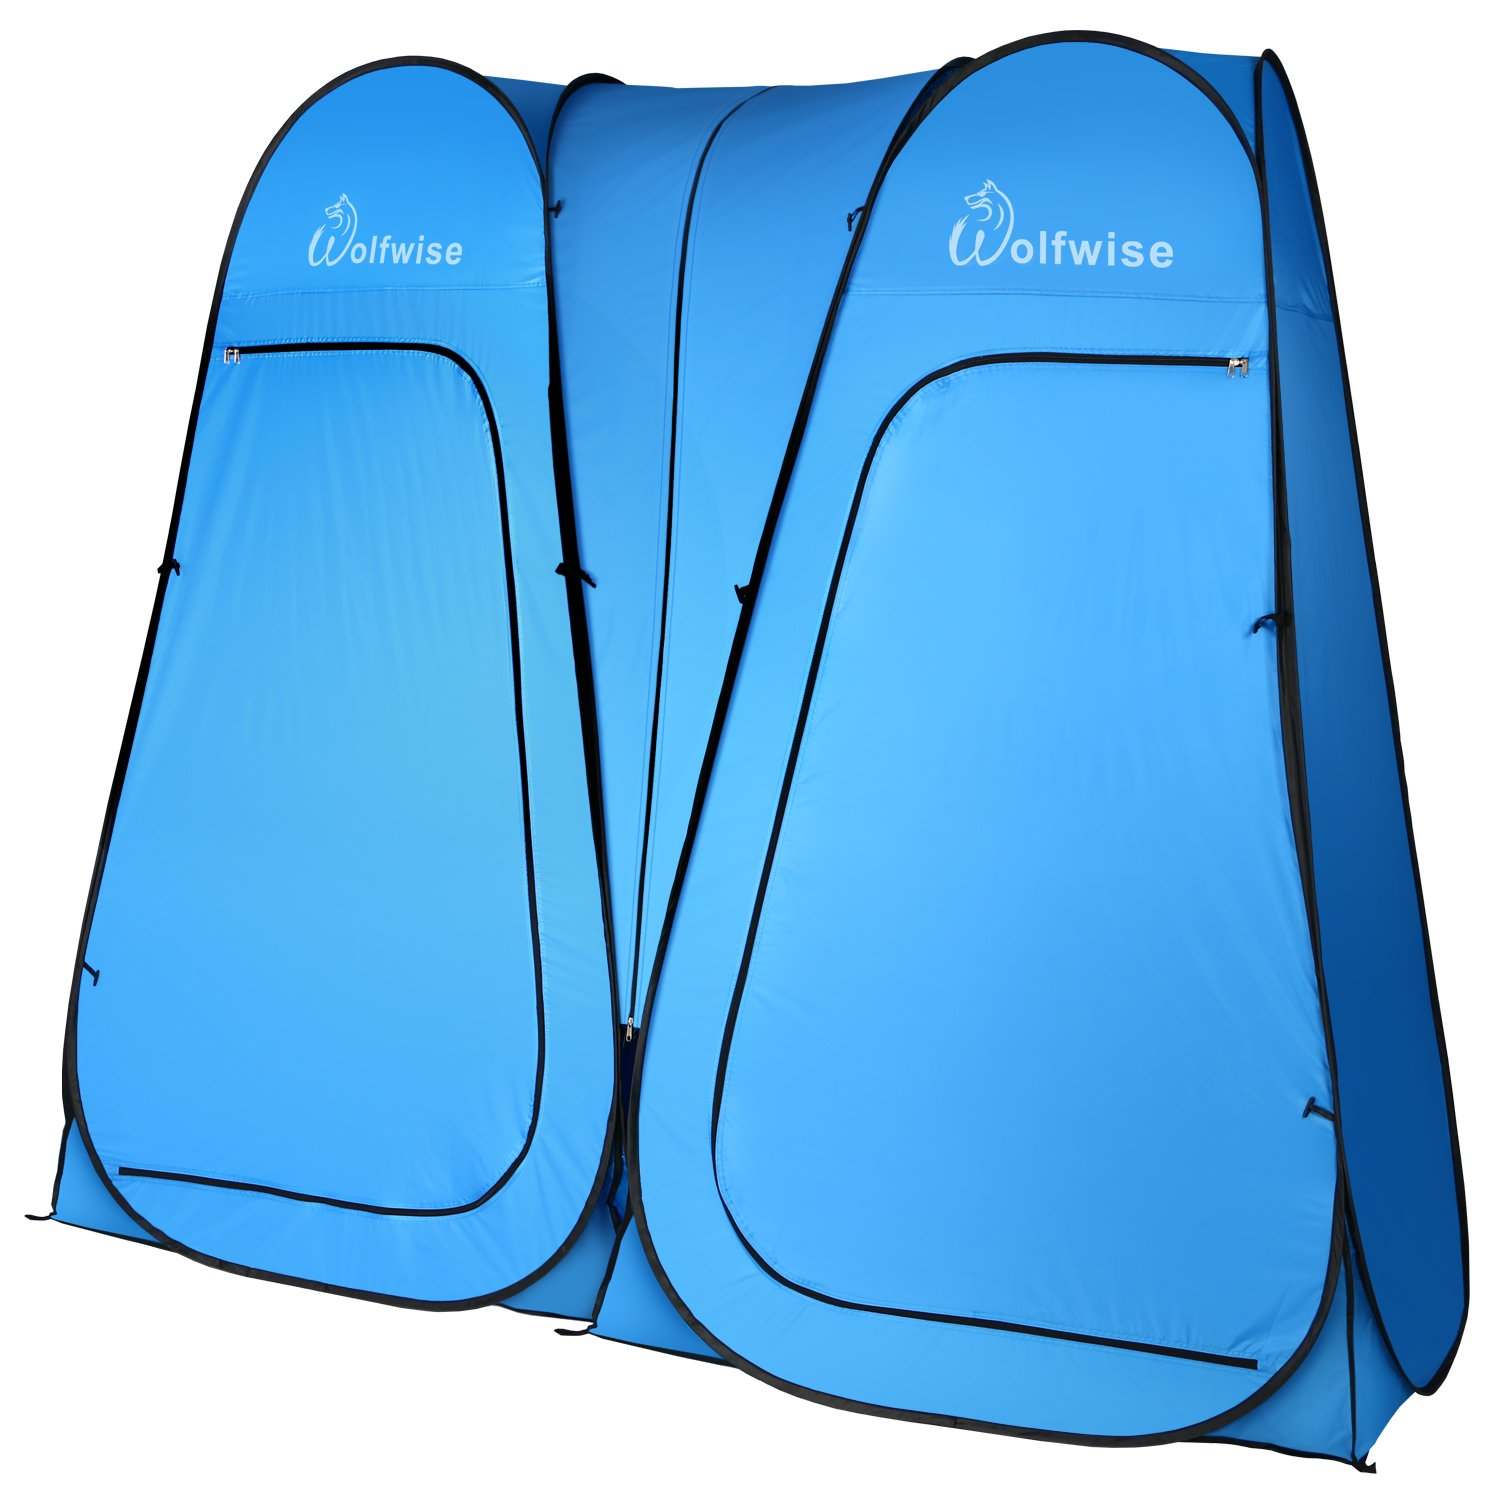 Amazon.com: WolfWise Pop Up Utilitent – Privacy Portable Camping ...